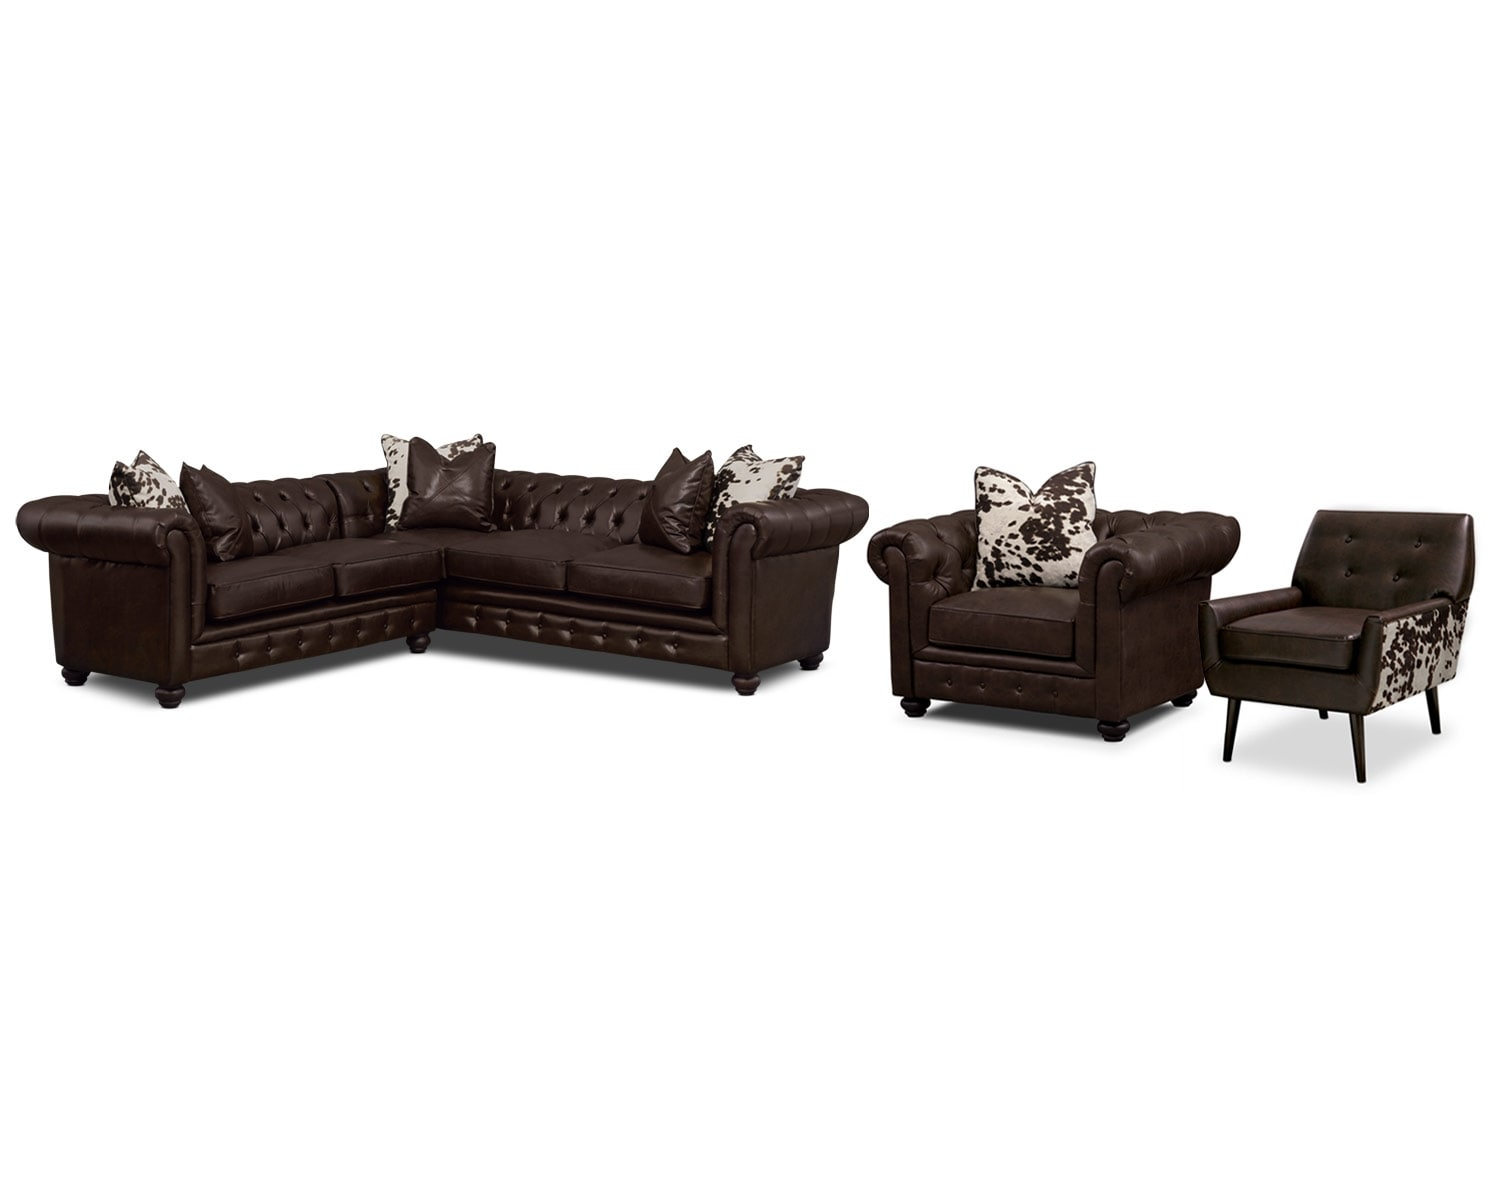 The Madeline Chocolate Sectional Collection